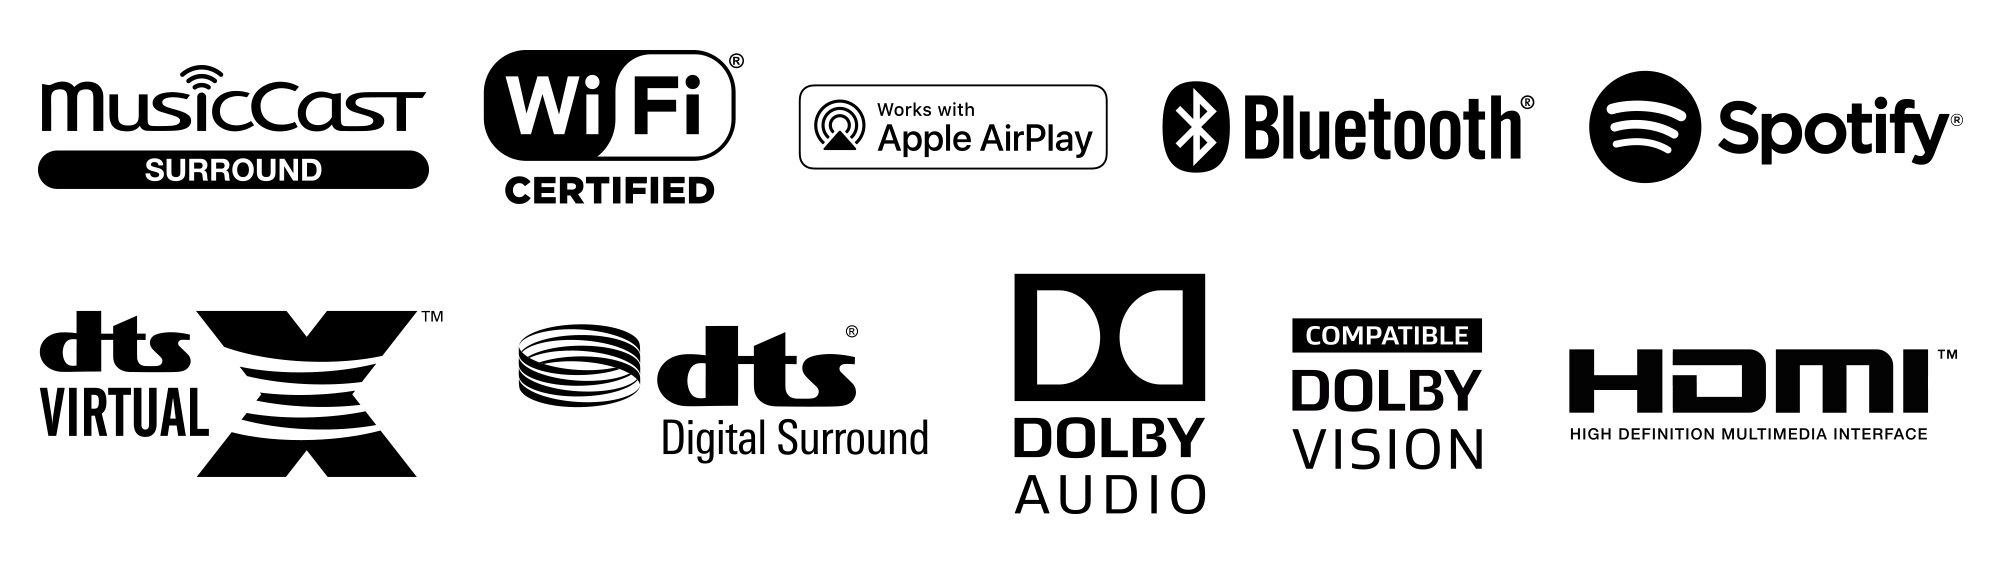 Supports: MusicCast Surround, DTS Virtual X, DTS Digital Surround, Dolby Audio, WiFi, Apple AirPlay, Bluetooth, Spotify, HDMI; uses Qualcomm Digital Amplification and is compatible with Dolby Vision